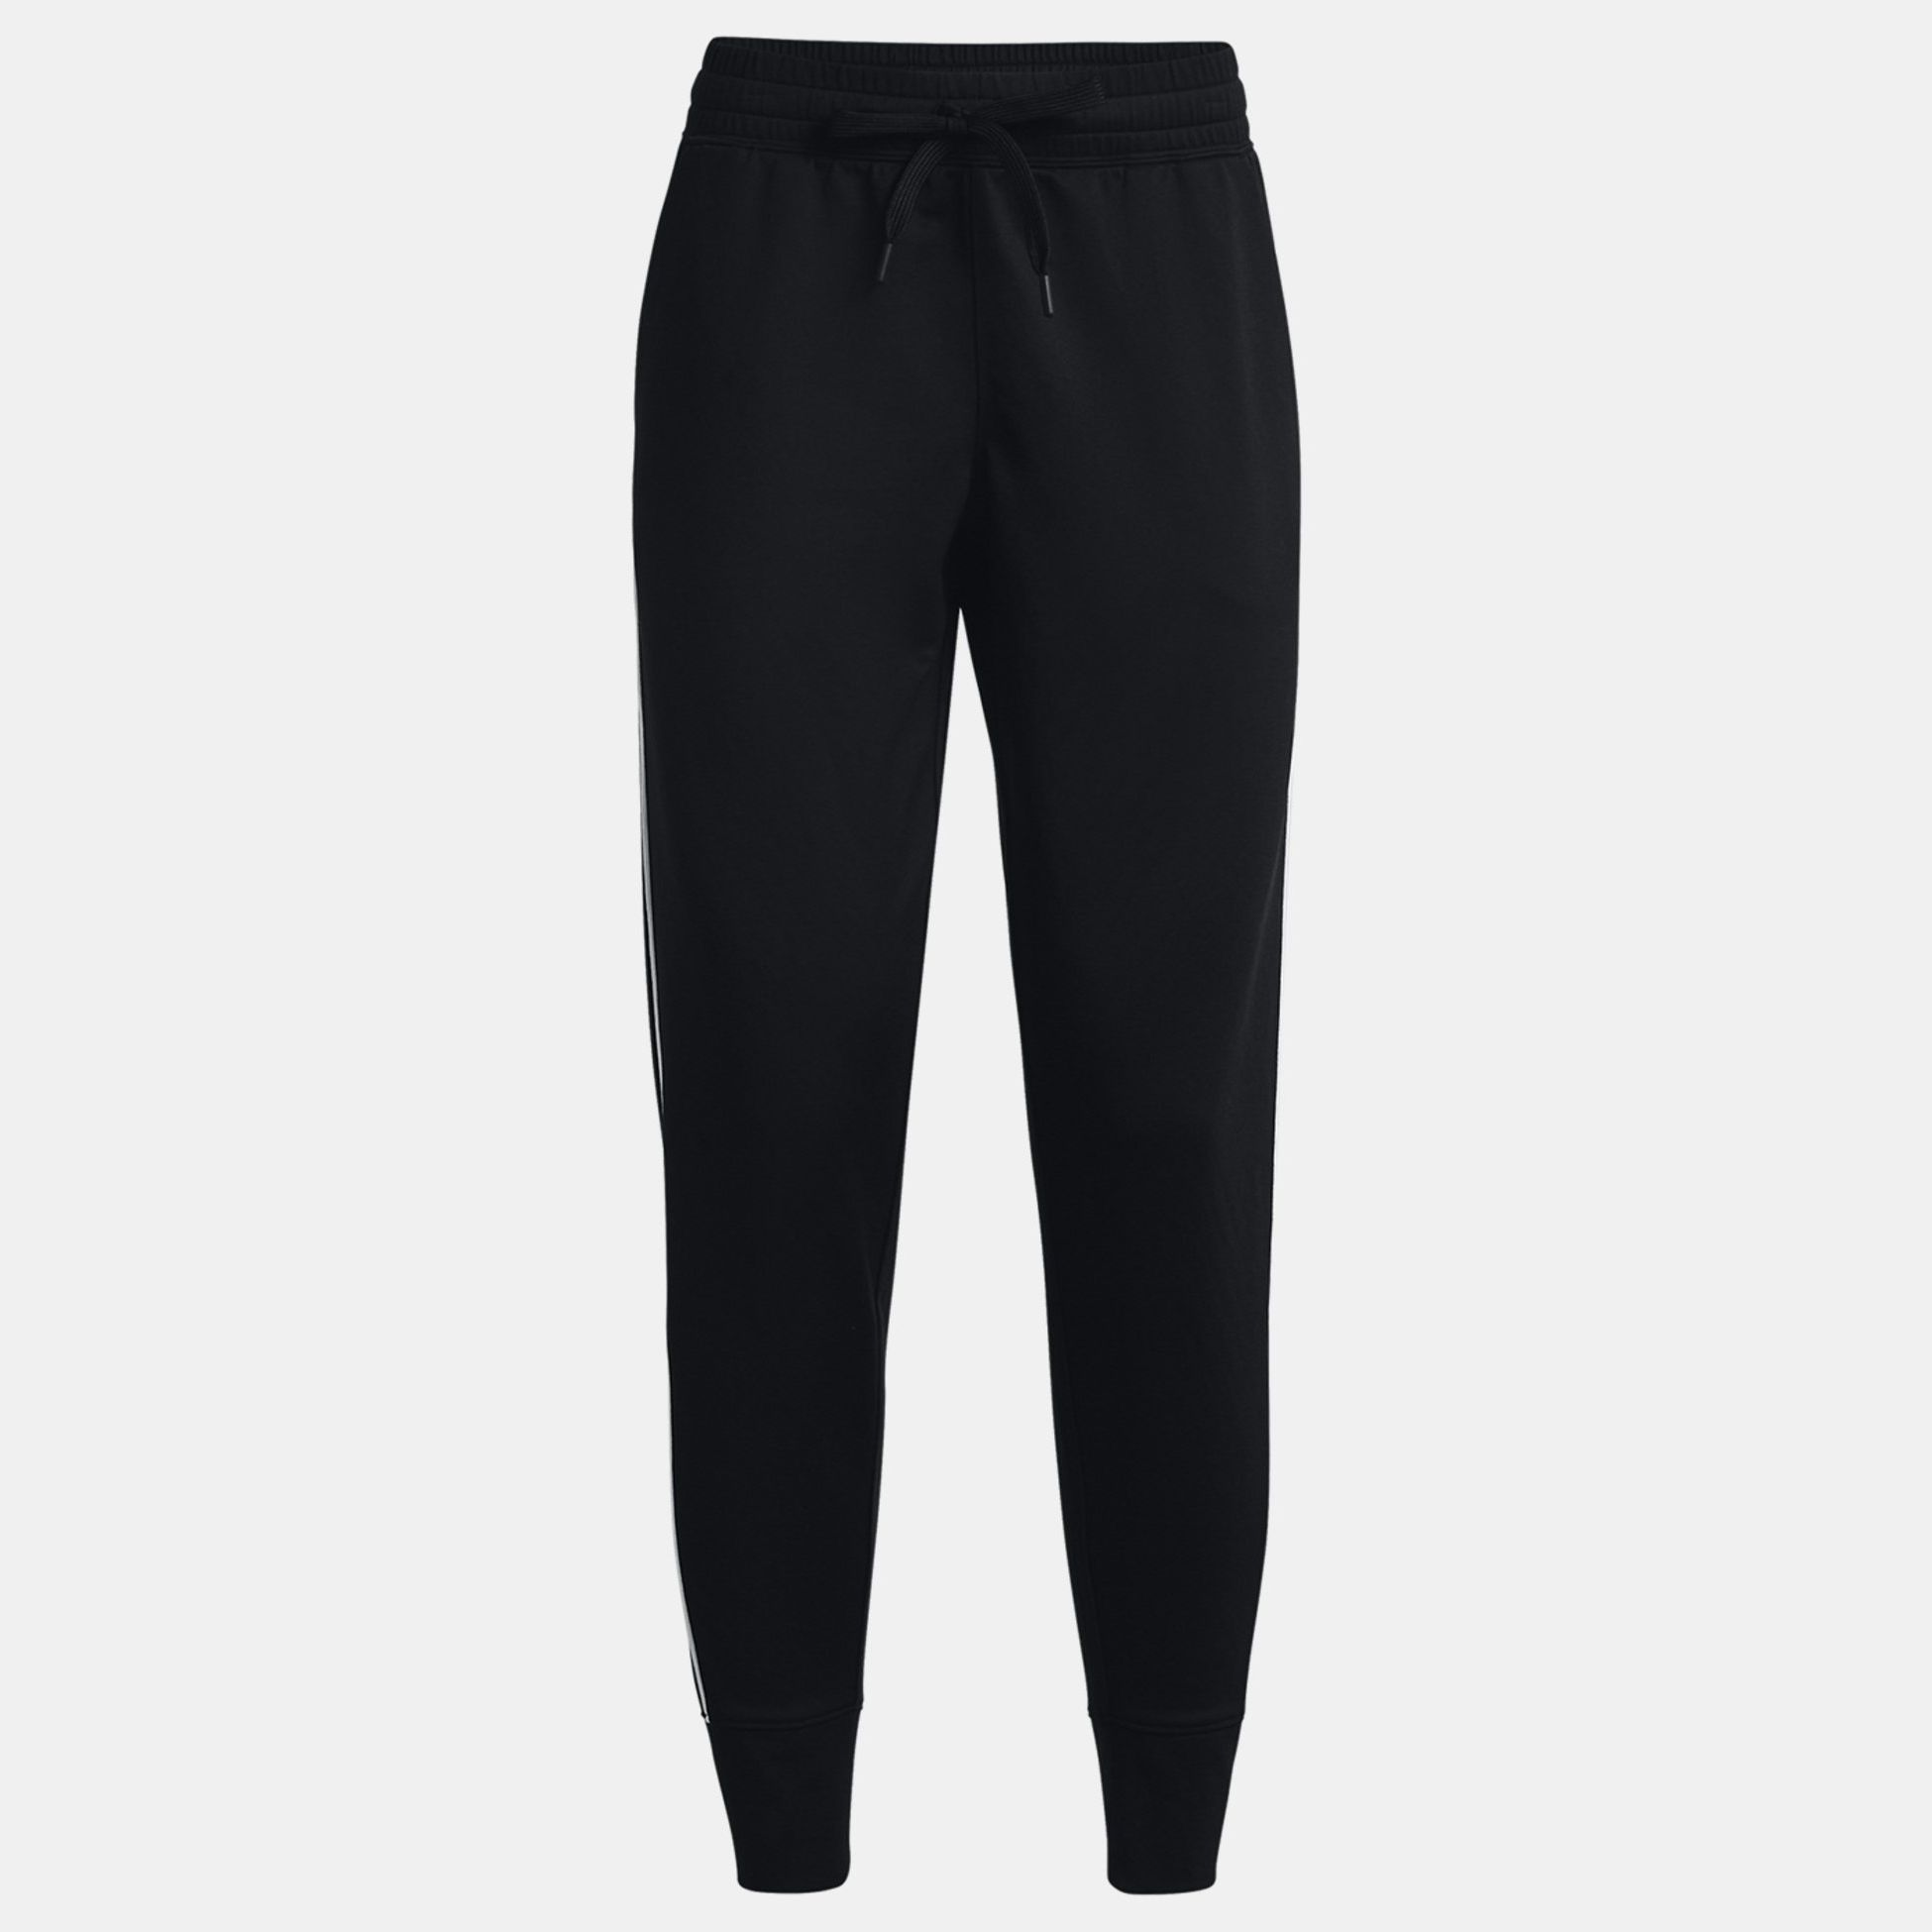 Clothing -  under armour UA RUSH Tricot Pants